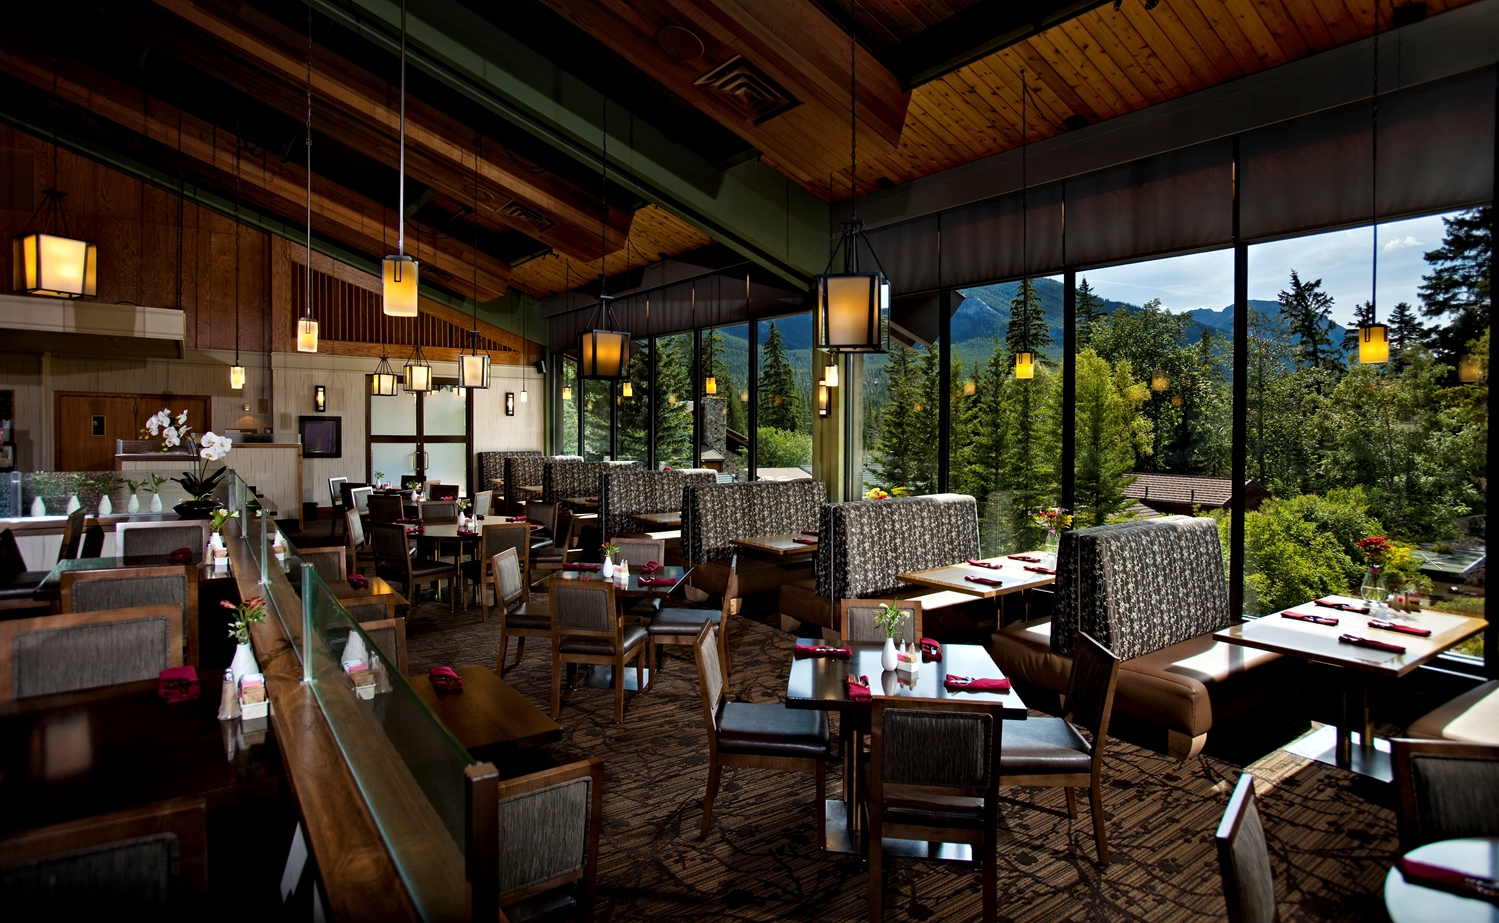 Restaurant - Banff Park Lodge